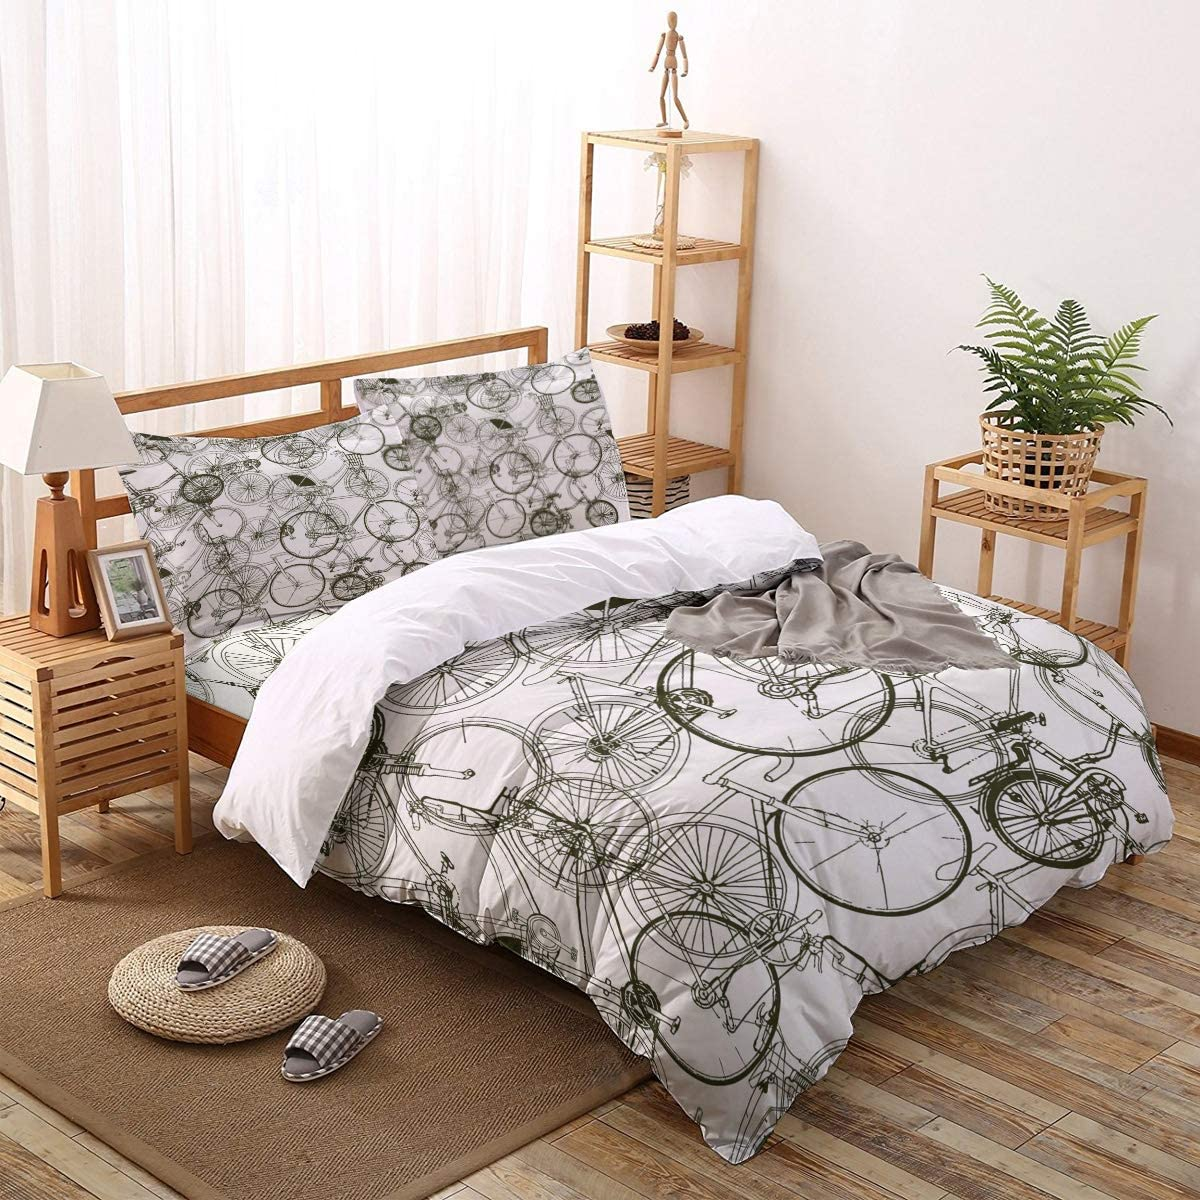 Greeeen 4 Pieces Duvet Cover 67% OFF of fixed price Set- trust + Flat 1 Bedding